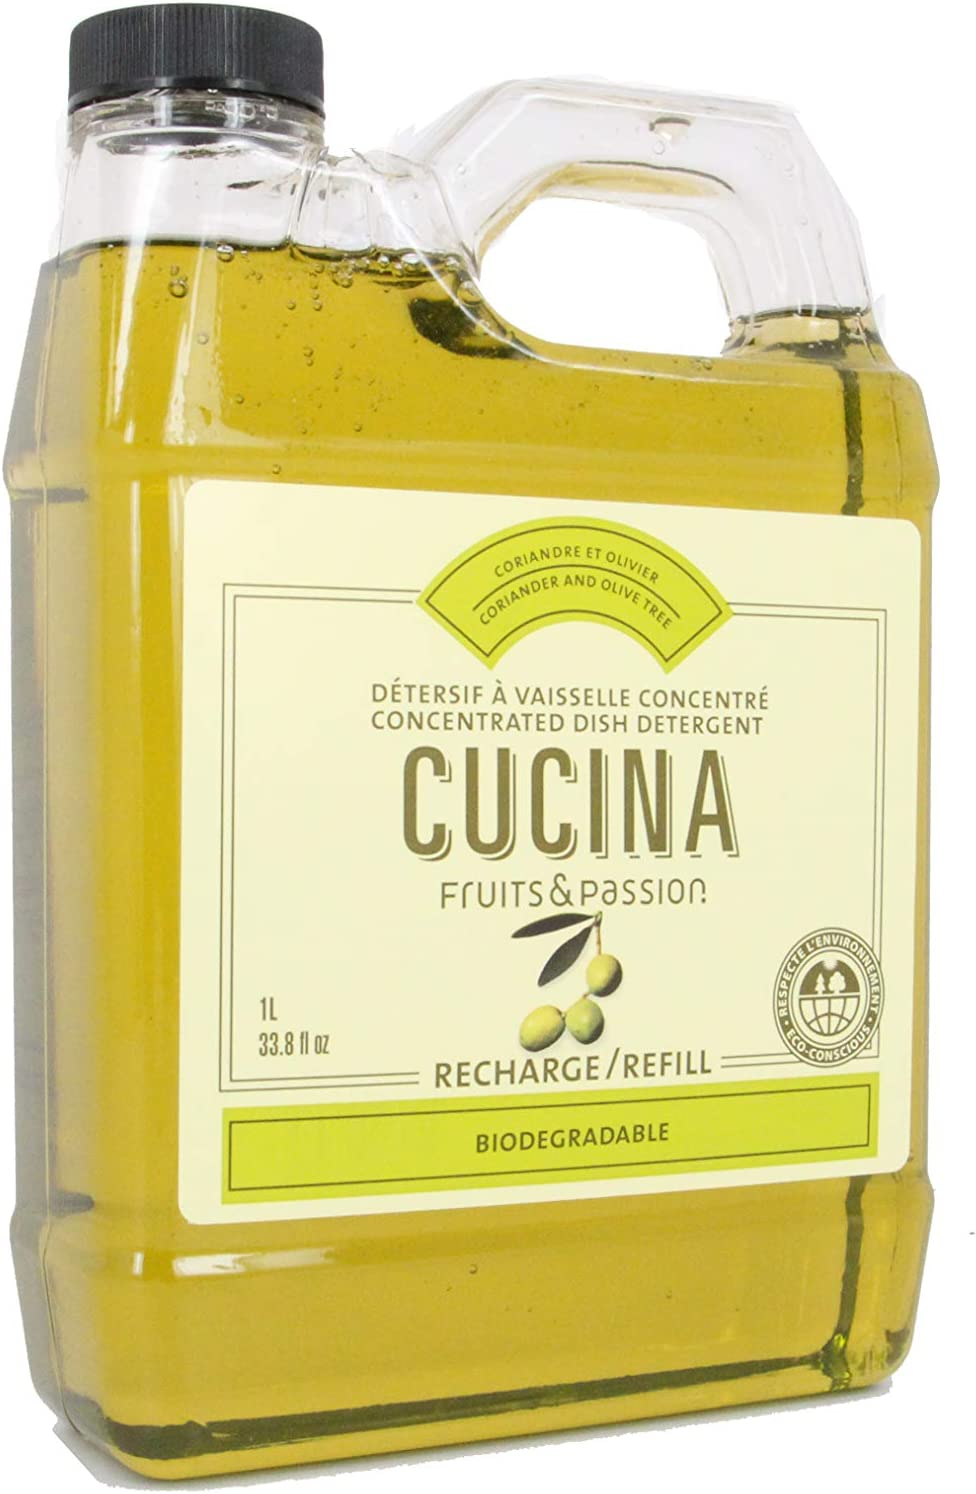 Cucina Concentrated Dish Detergent Refill Coriander and Olive Tree by Cucina